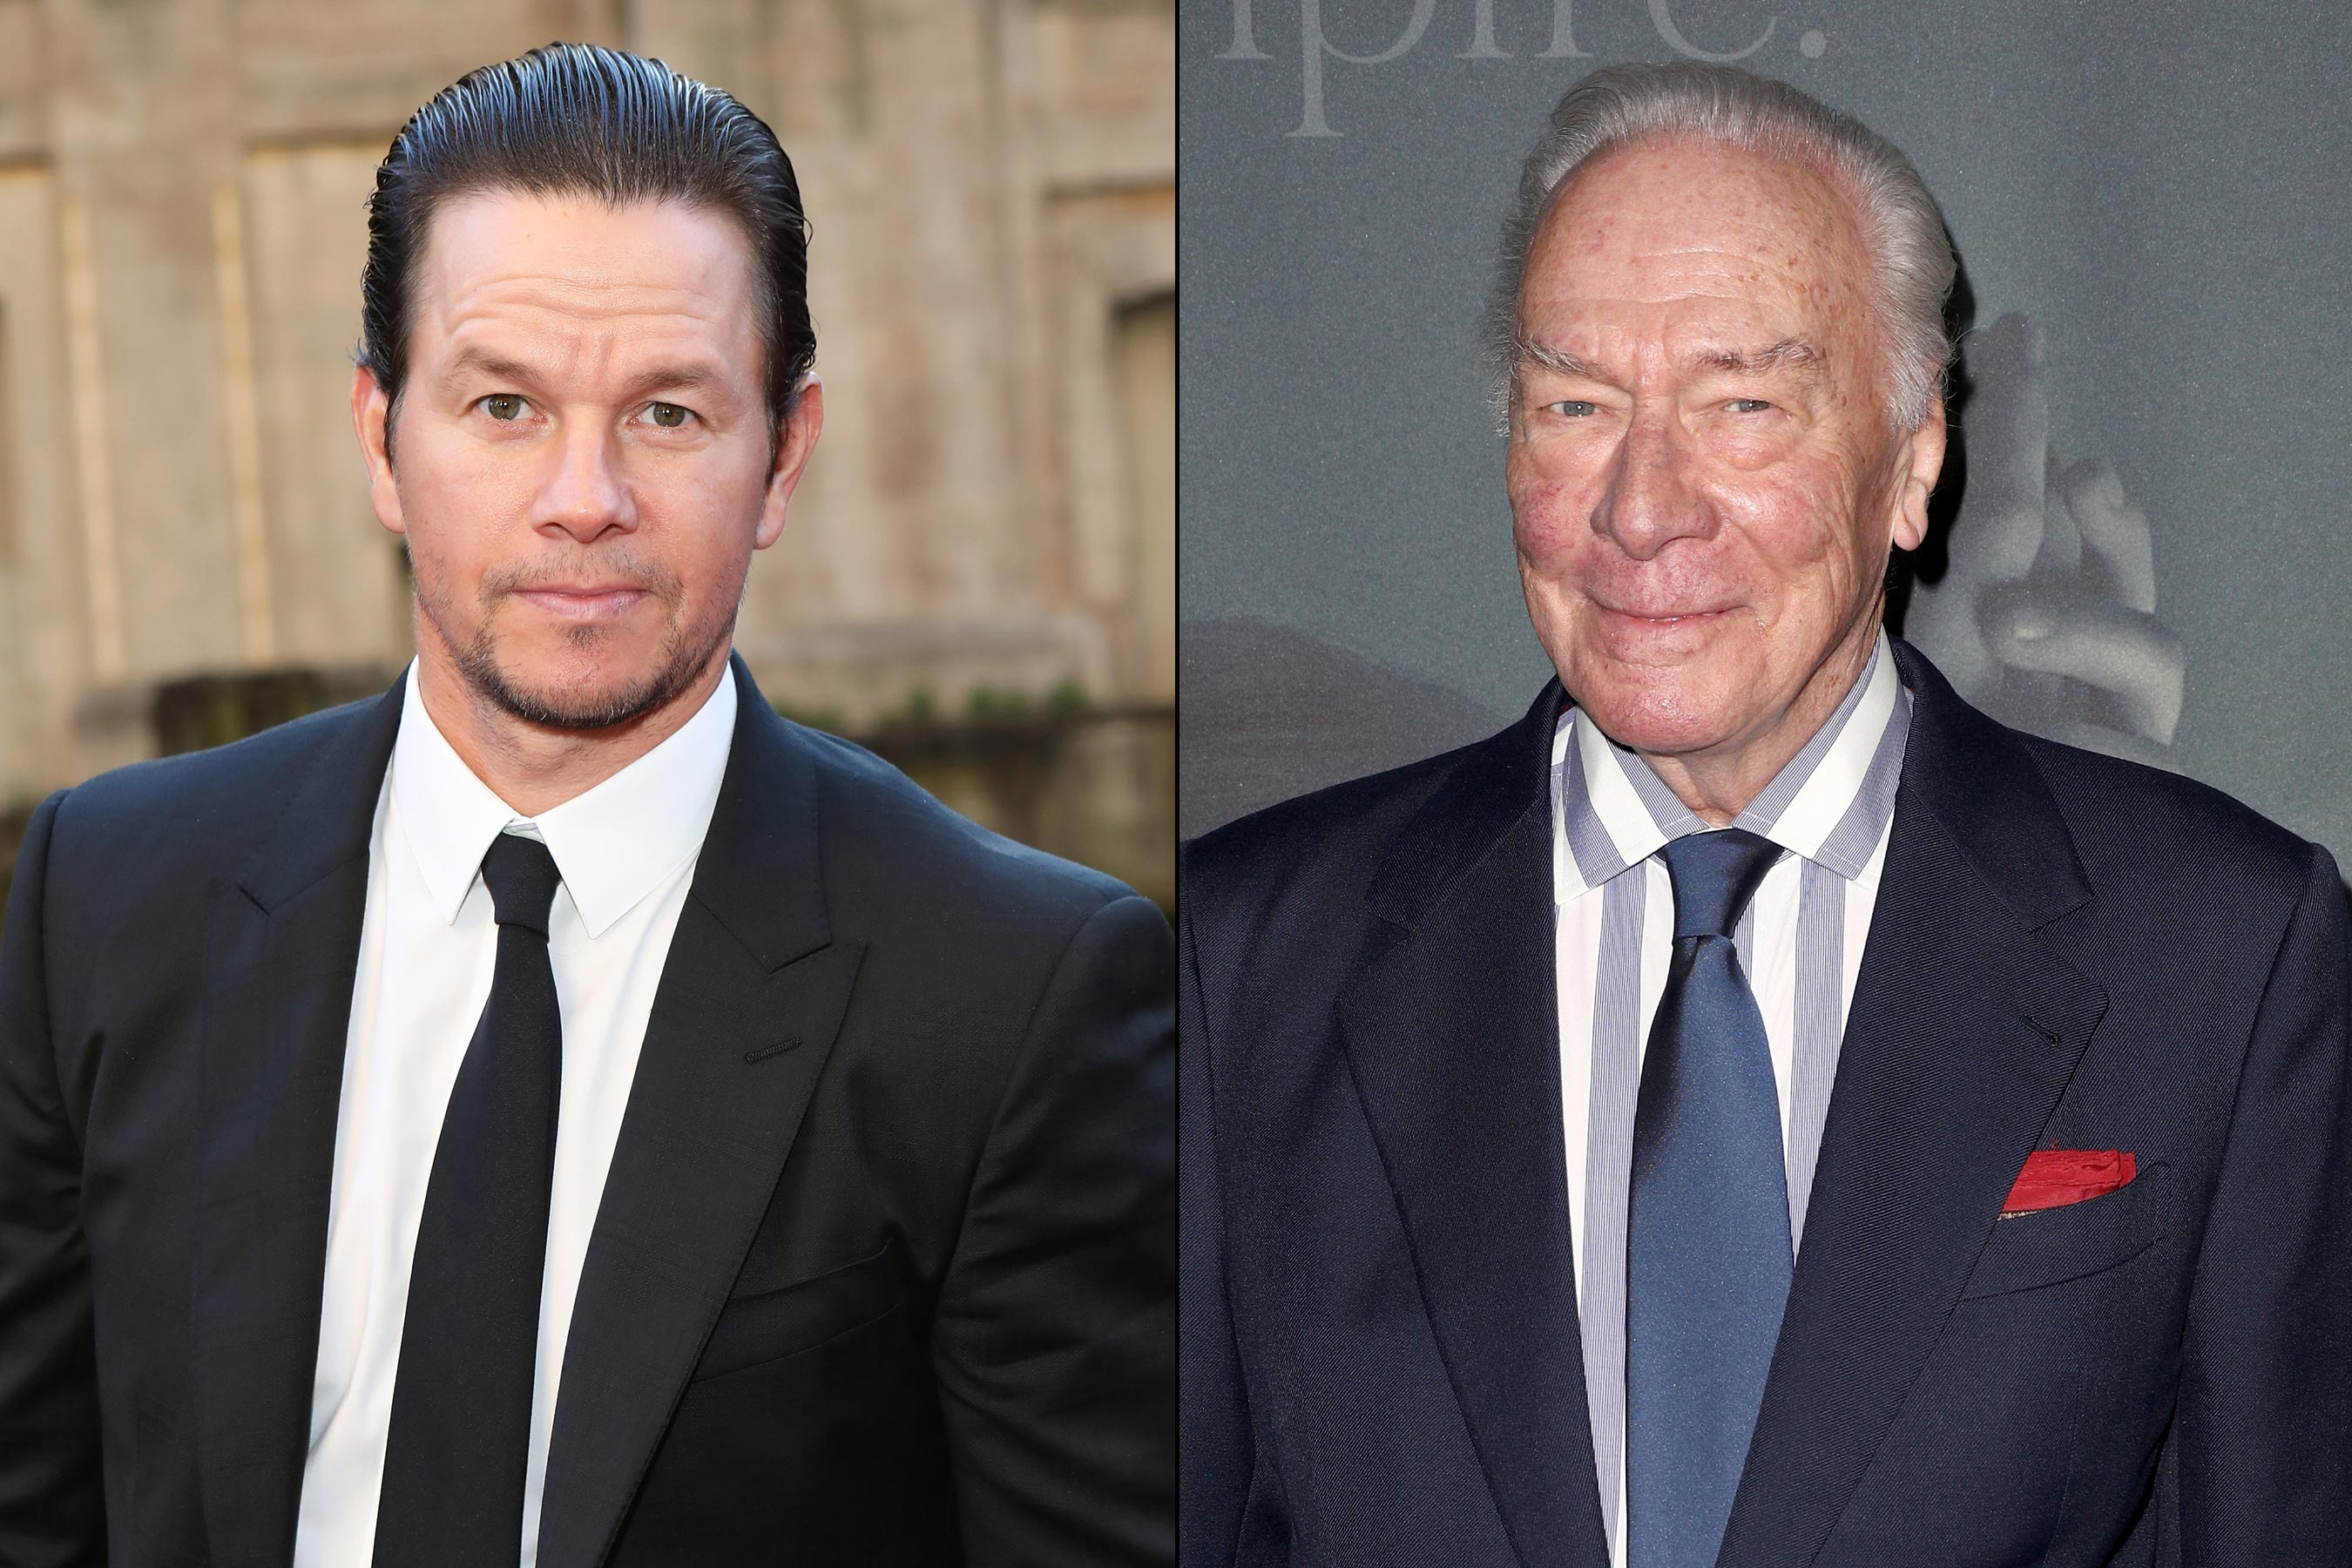 Mark Wahlberg refused to approve Christopher Plummer without big payday: report